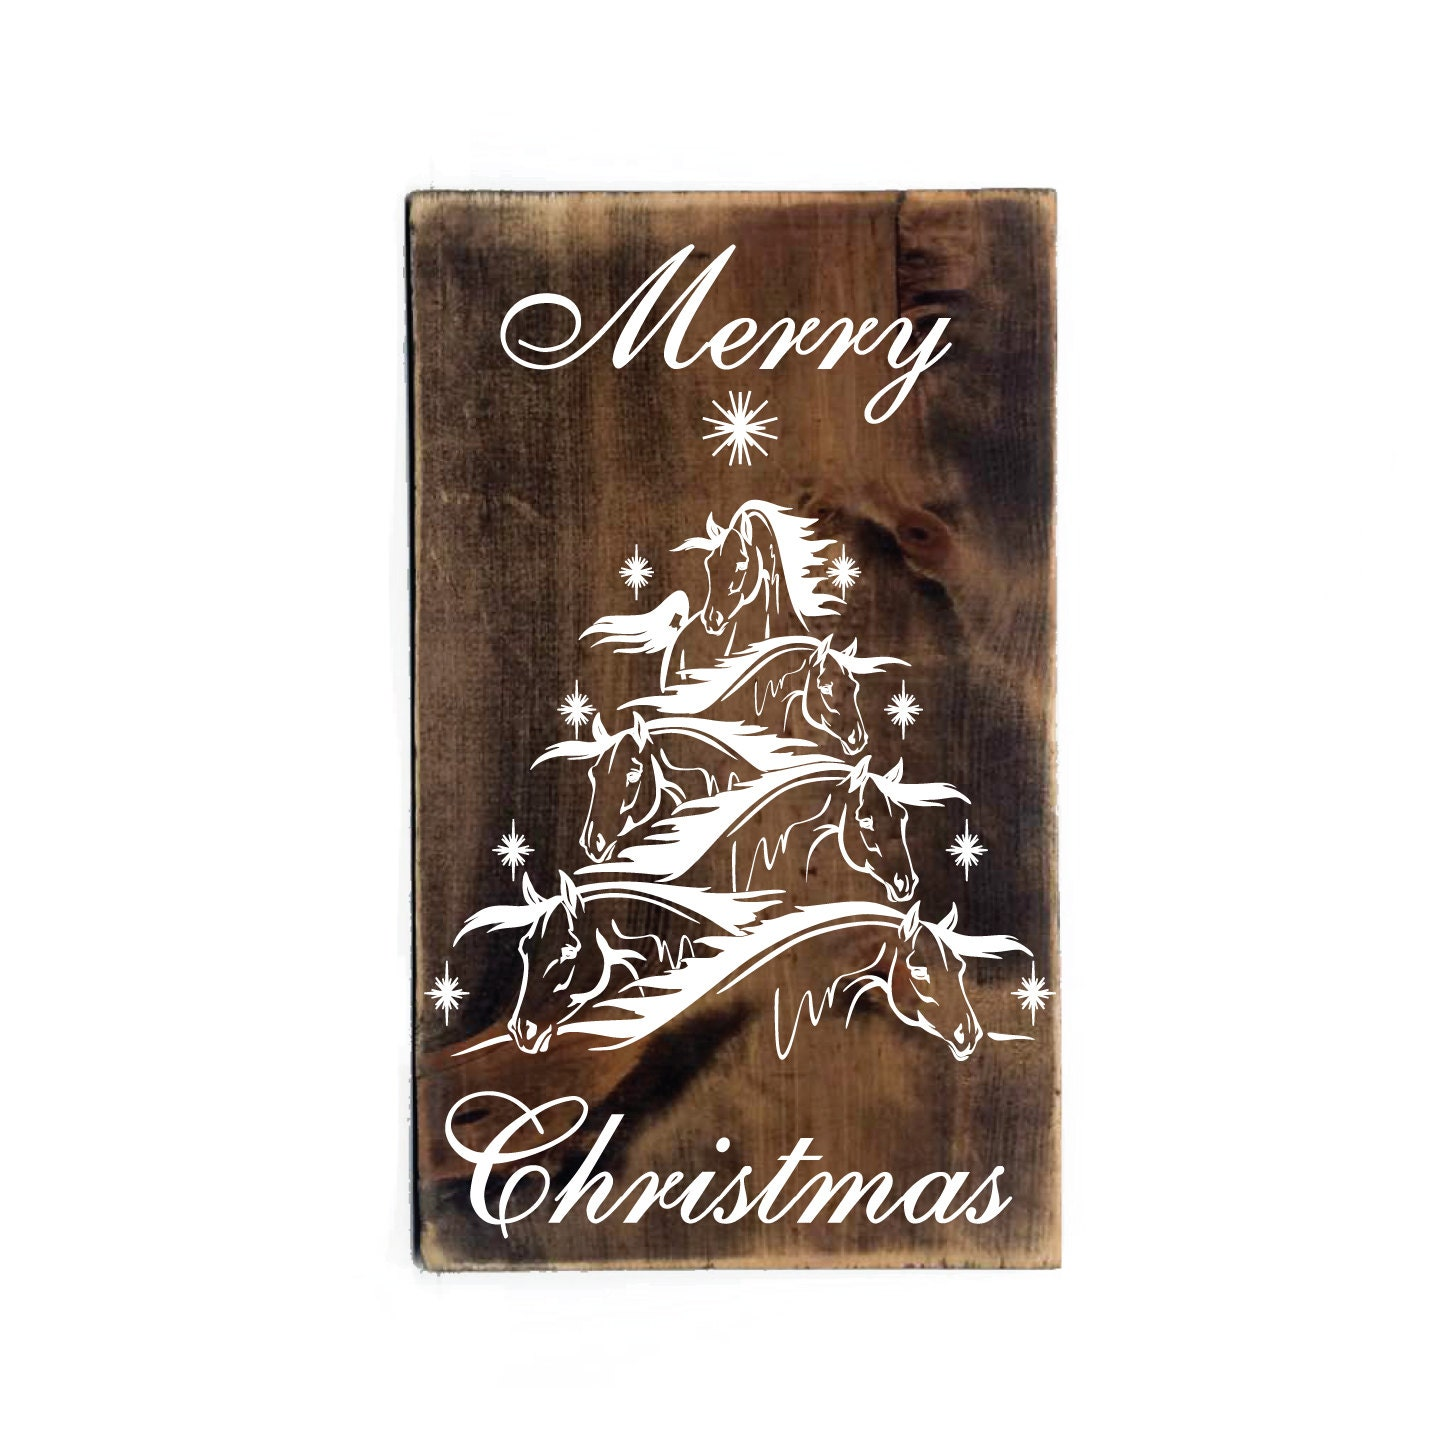 Merry christmas horse tree design wood sign by